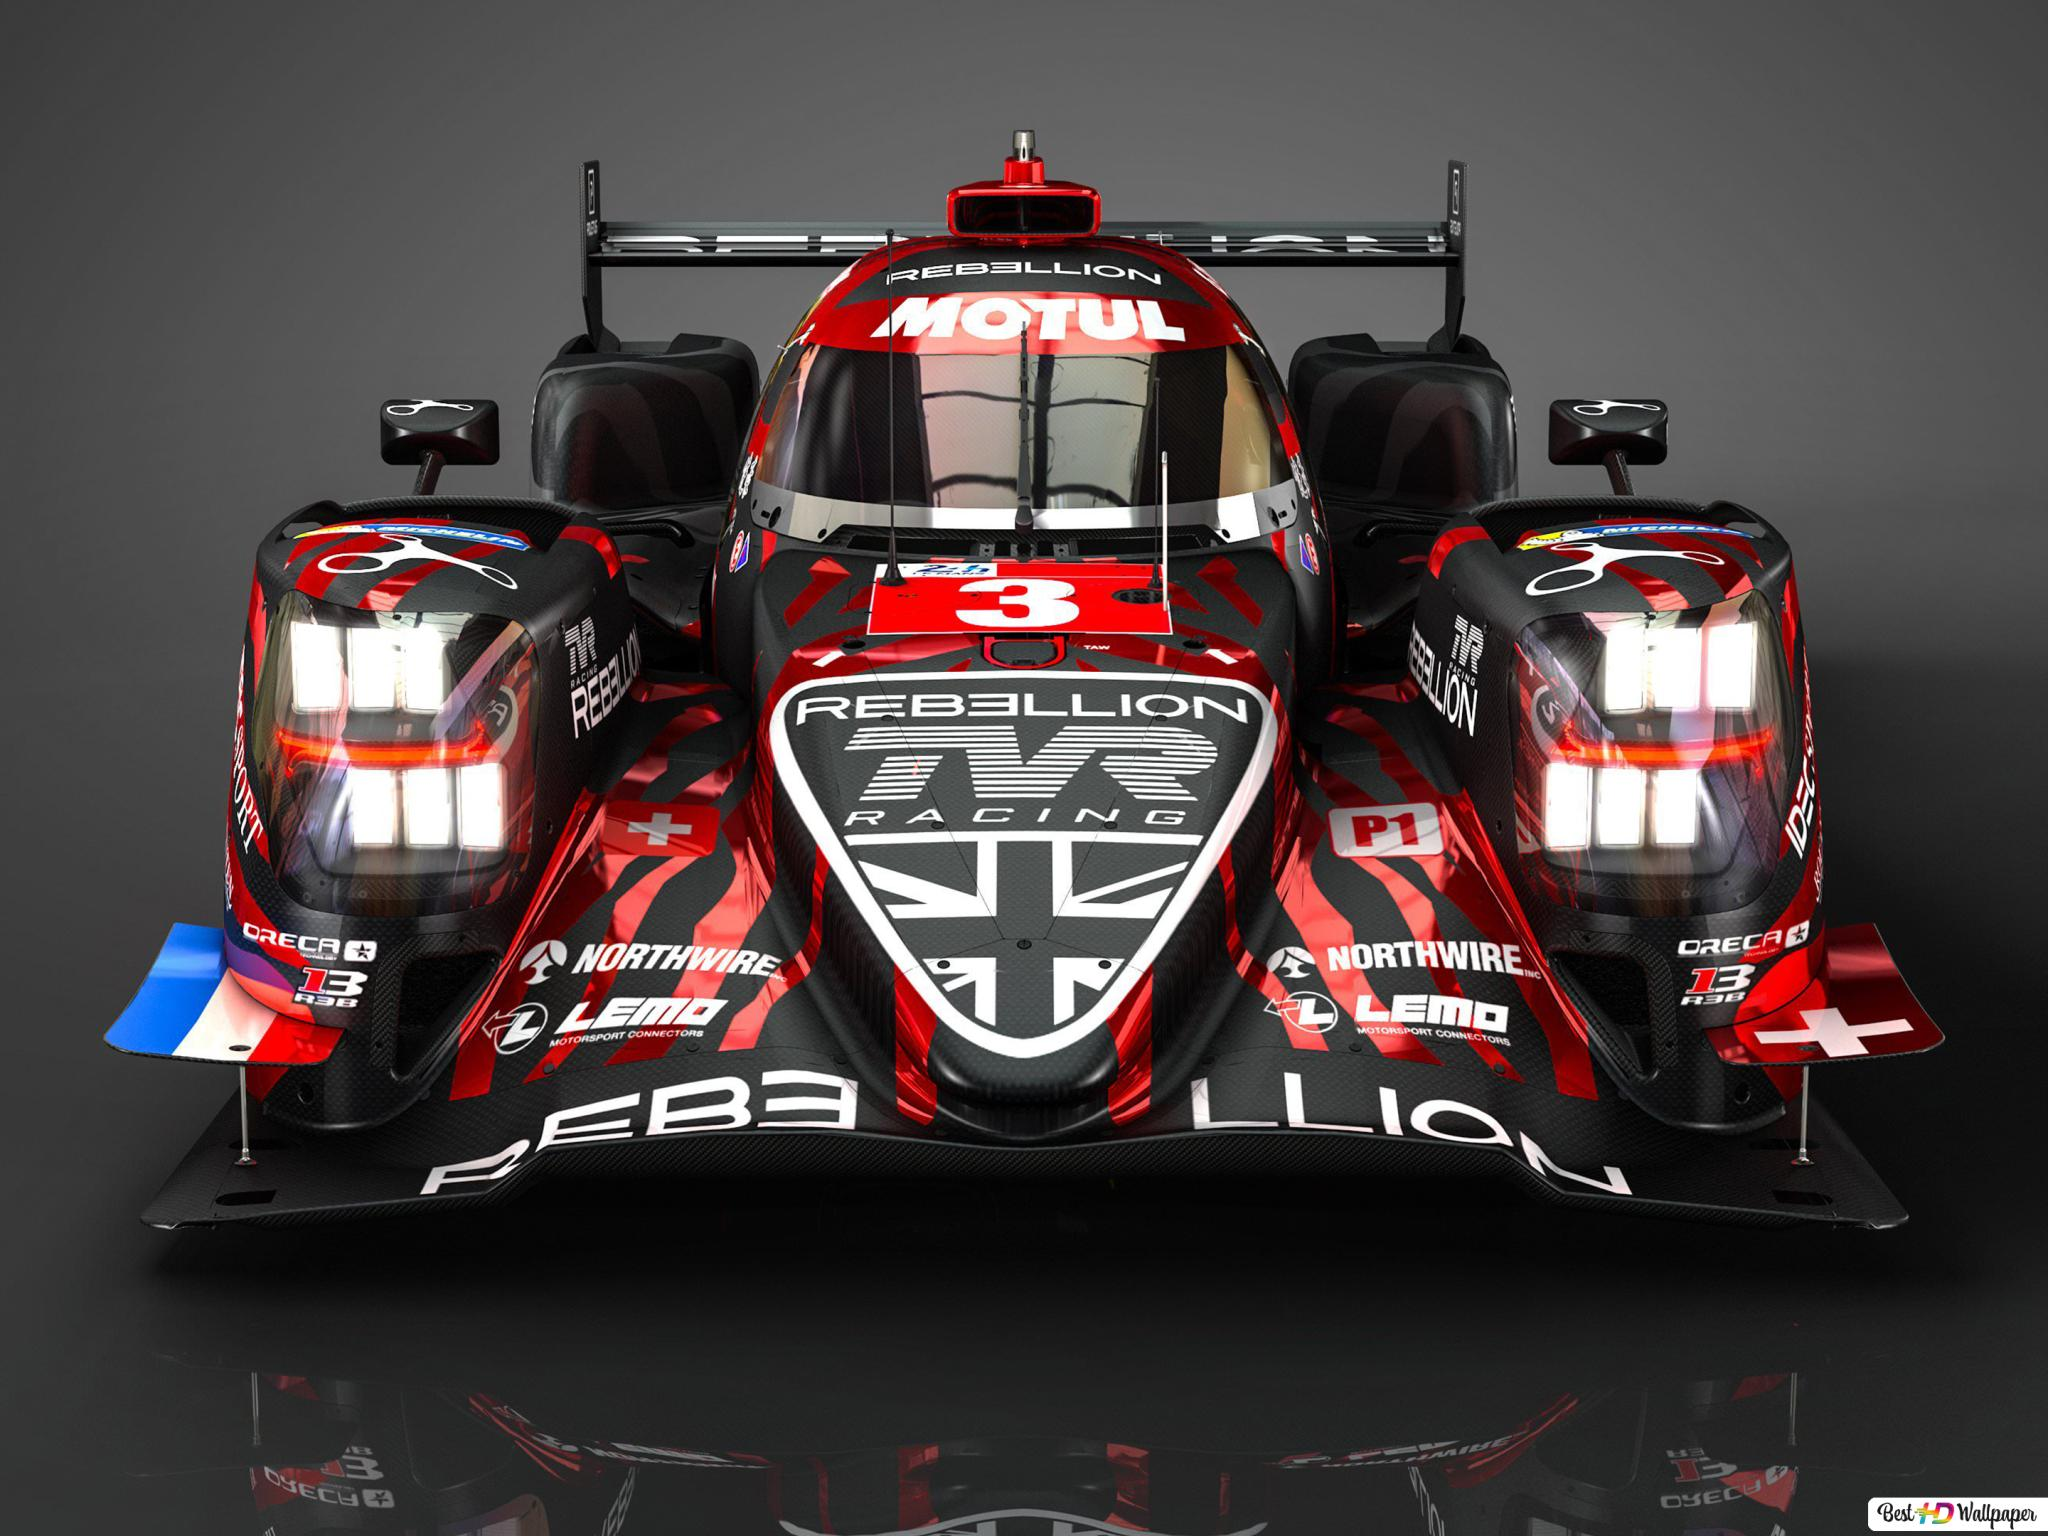 Rebellion R13 Race Car Hd Wallpaper Download